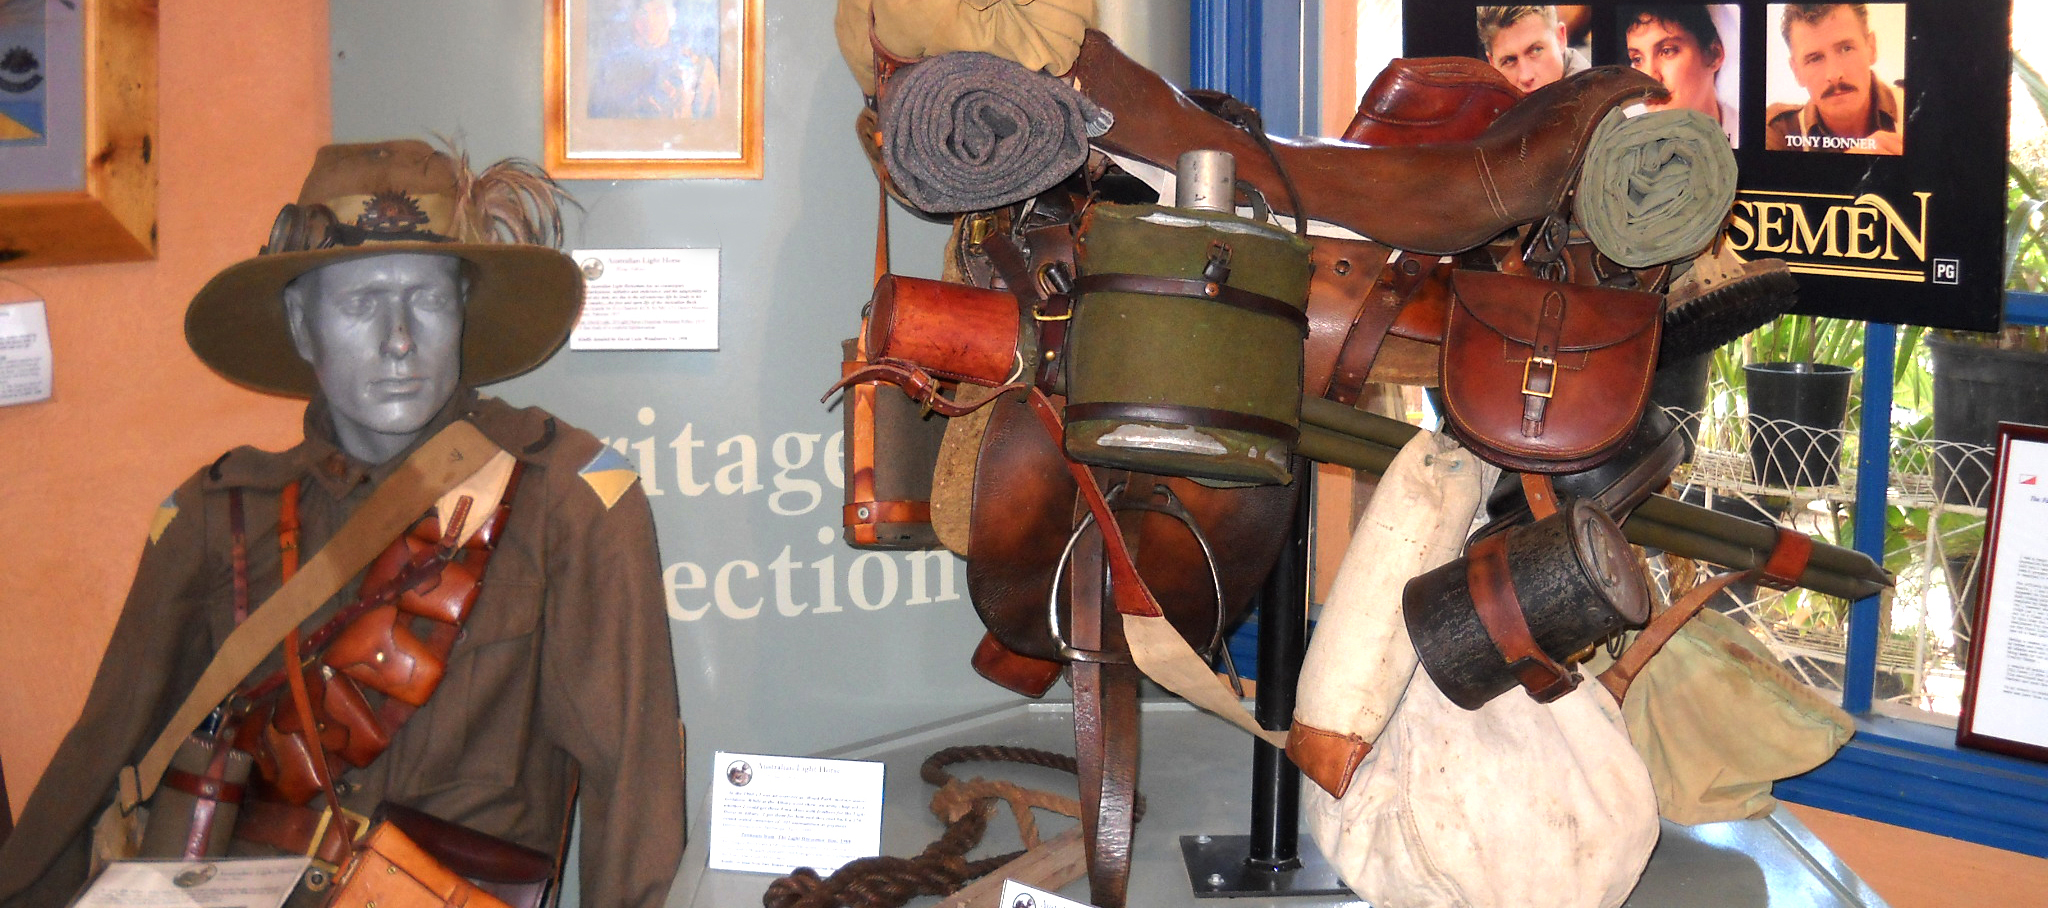 saddle and gear cropped.jpg